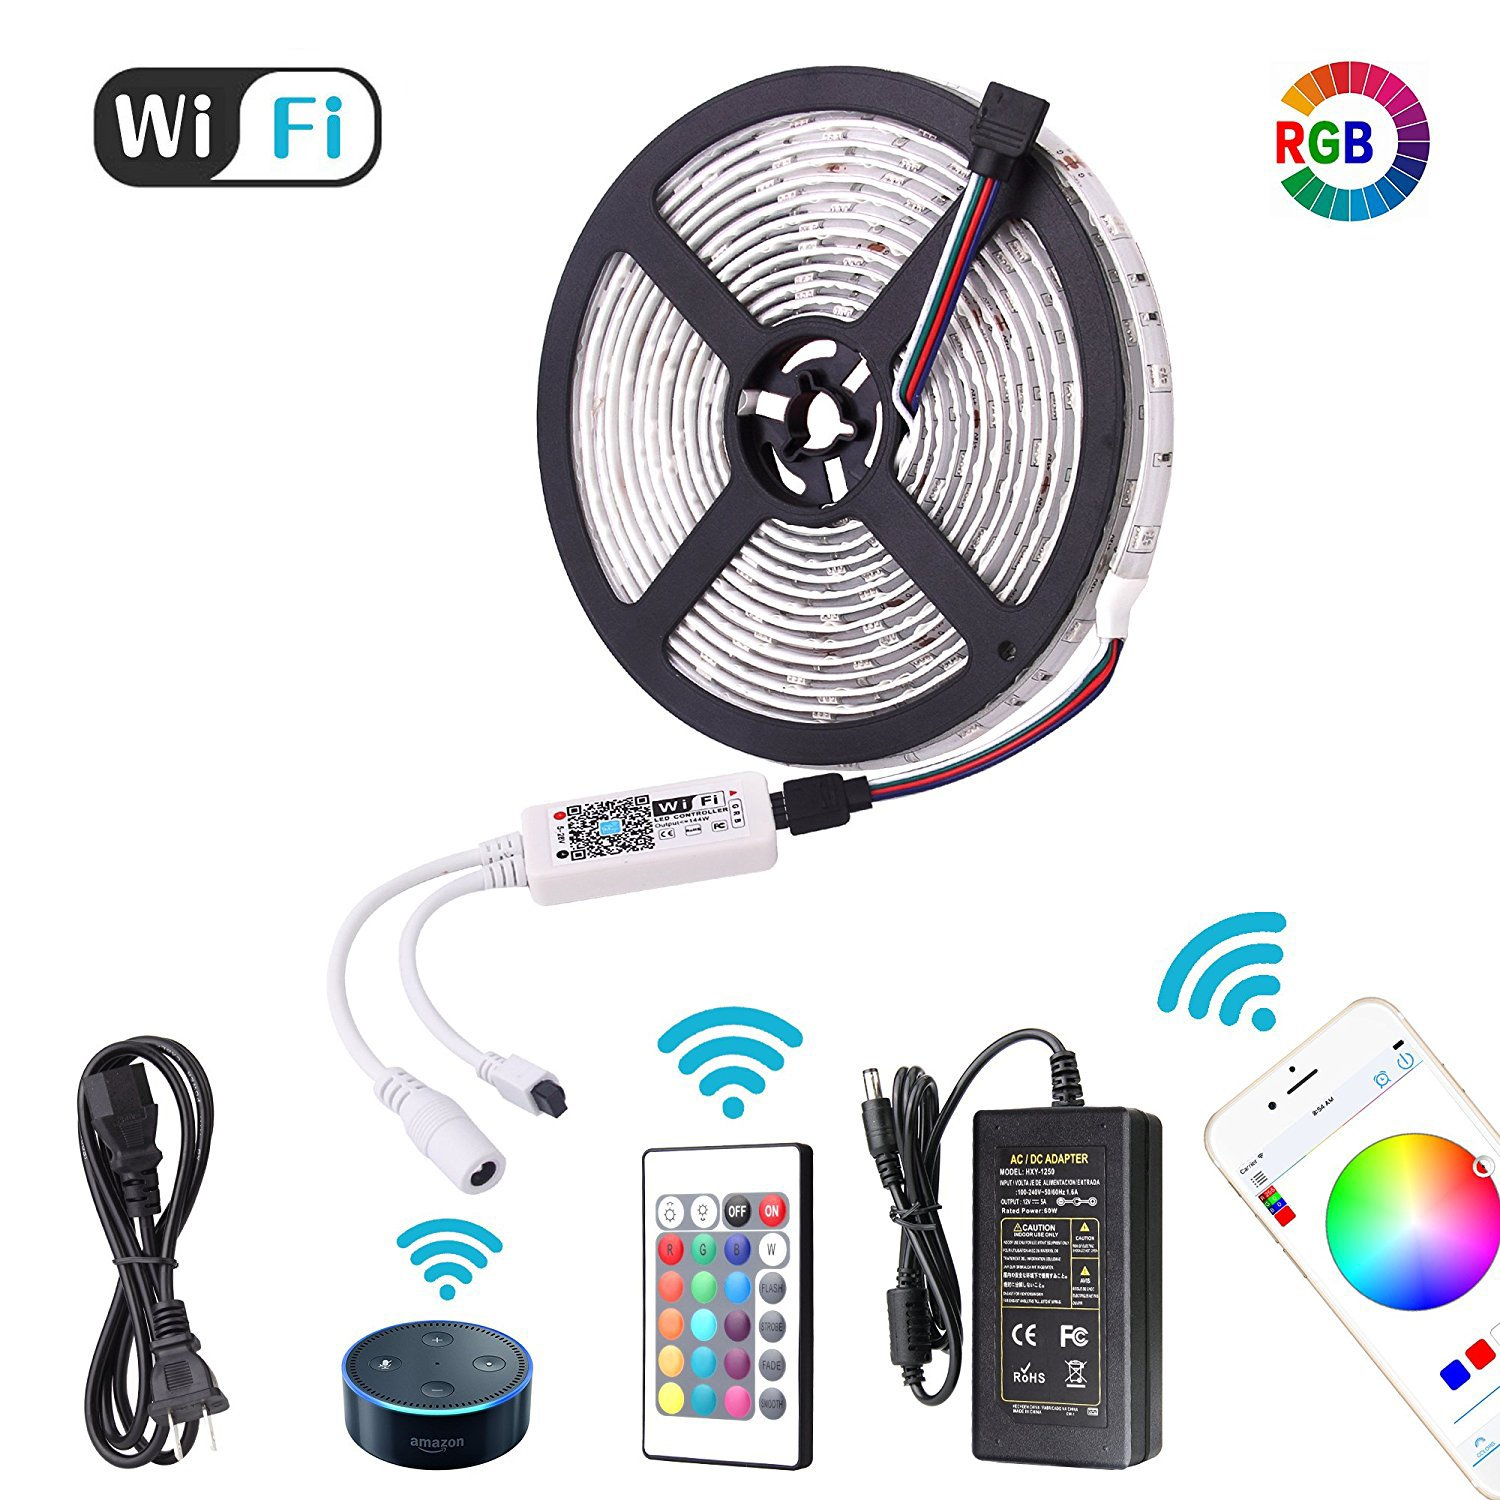 2018 New Targher Smart Led Strip Lights Wifi and Wireless Smart Phone Controlled RGB Led Light Strip Kit 16.4ft 5M 5050 Waterproof IP65 12V5A Power Supply Flexible Working with Android IOS and Alexa